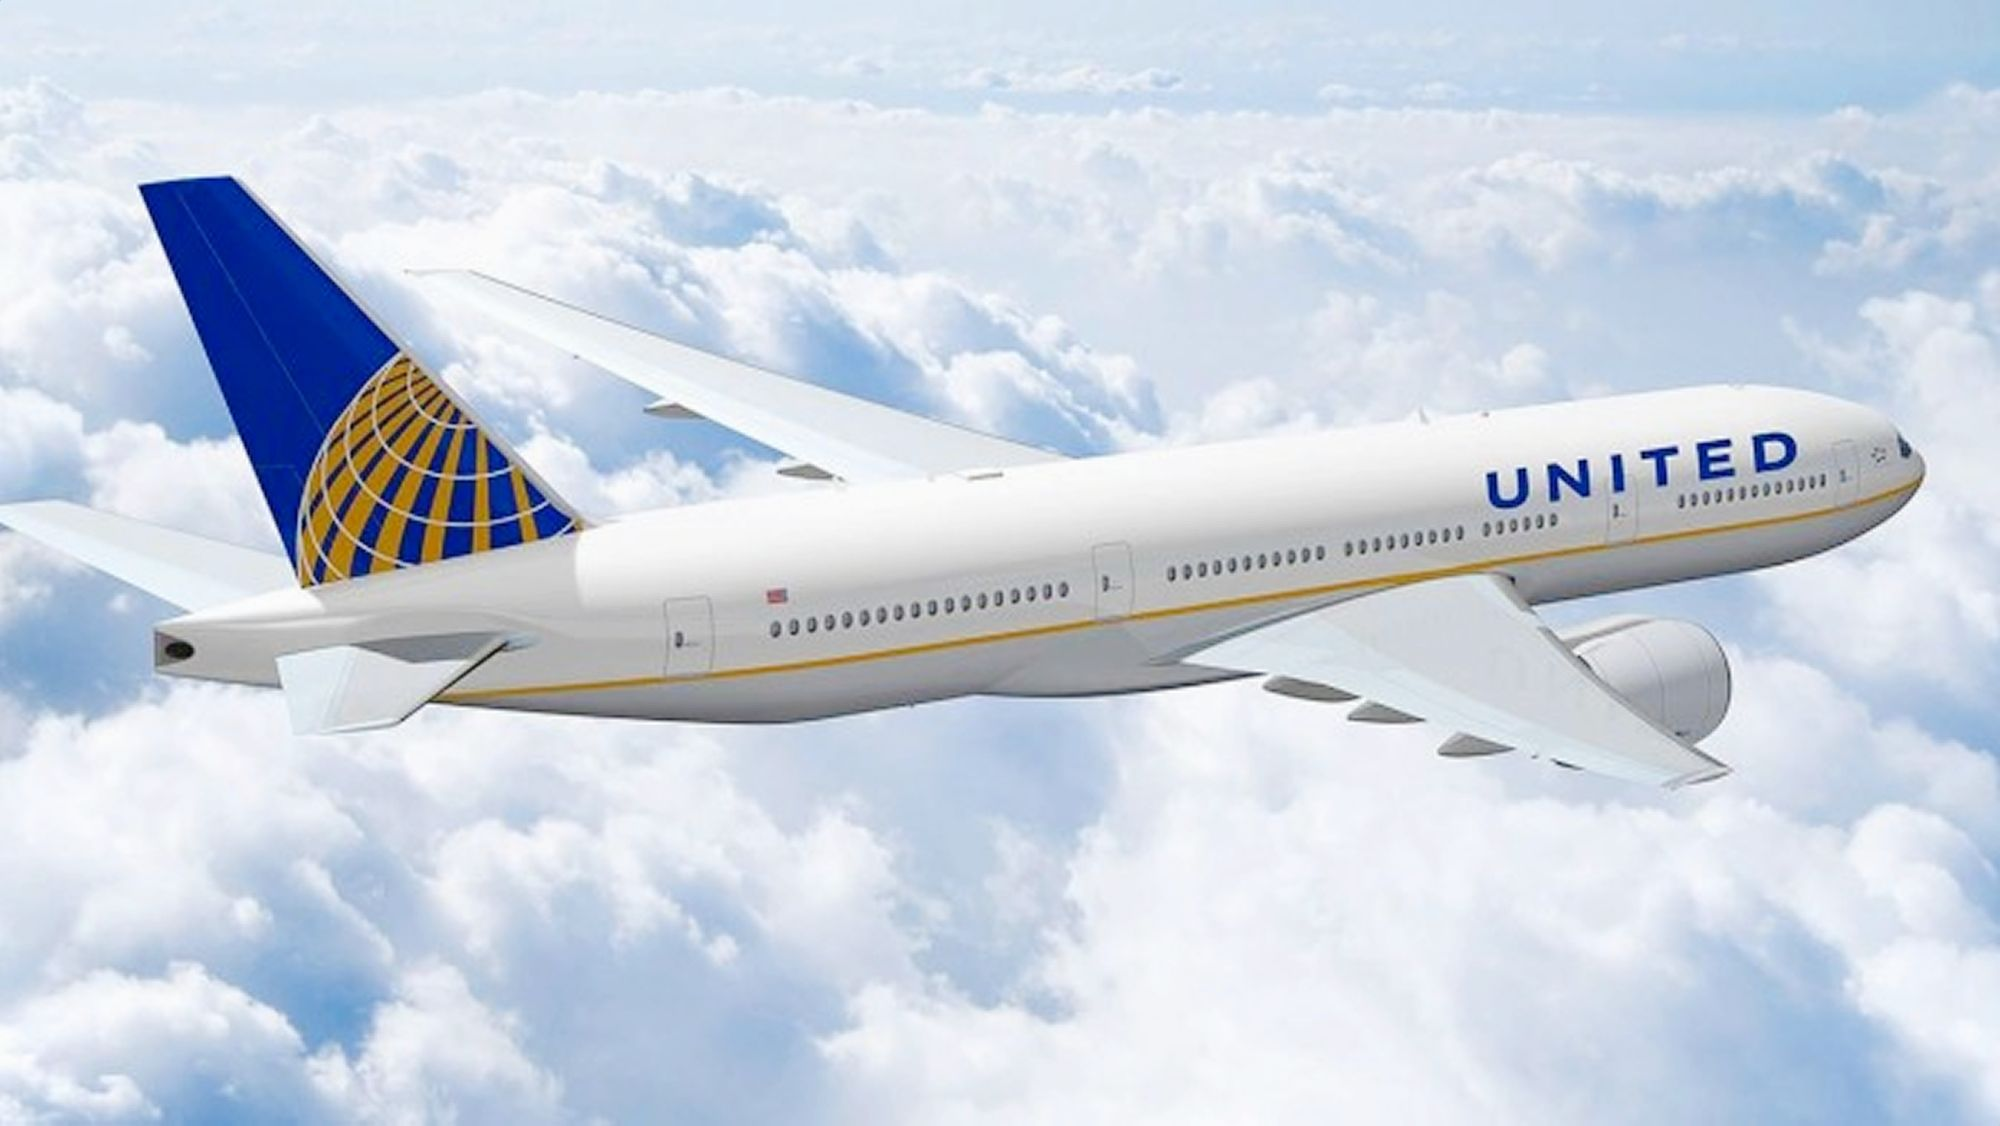 United Airlines Customer Service +18556535007 (With images